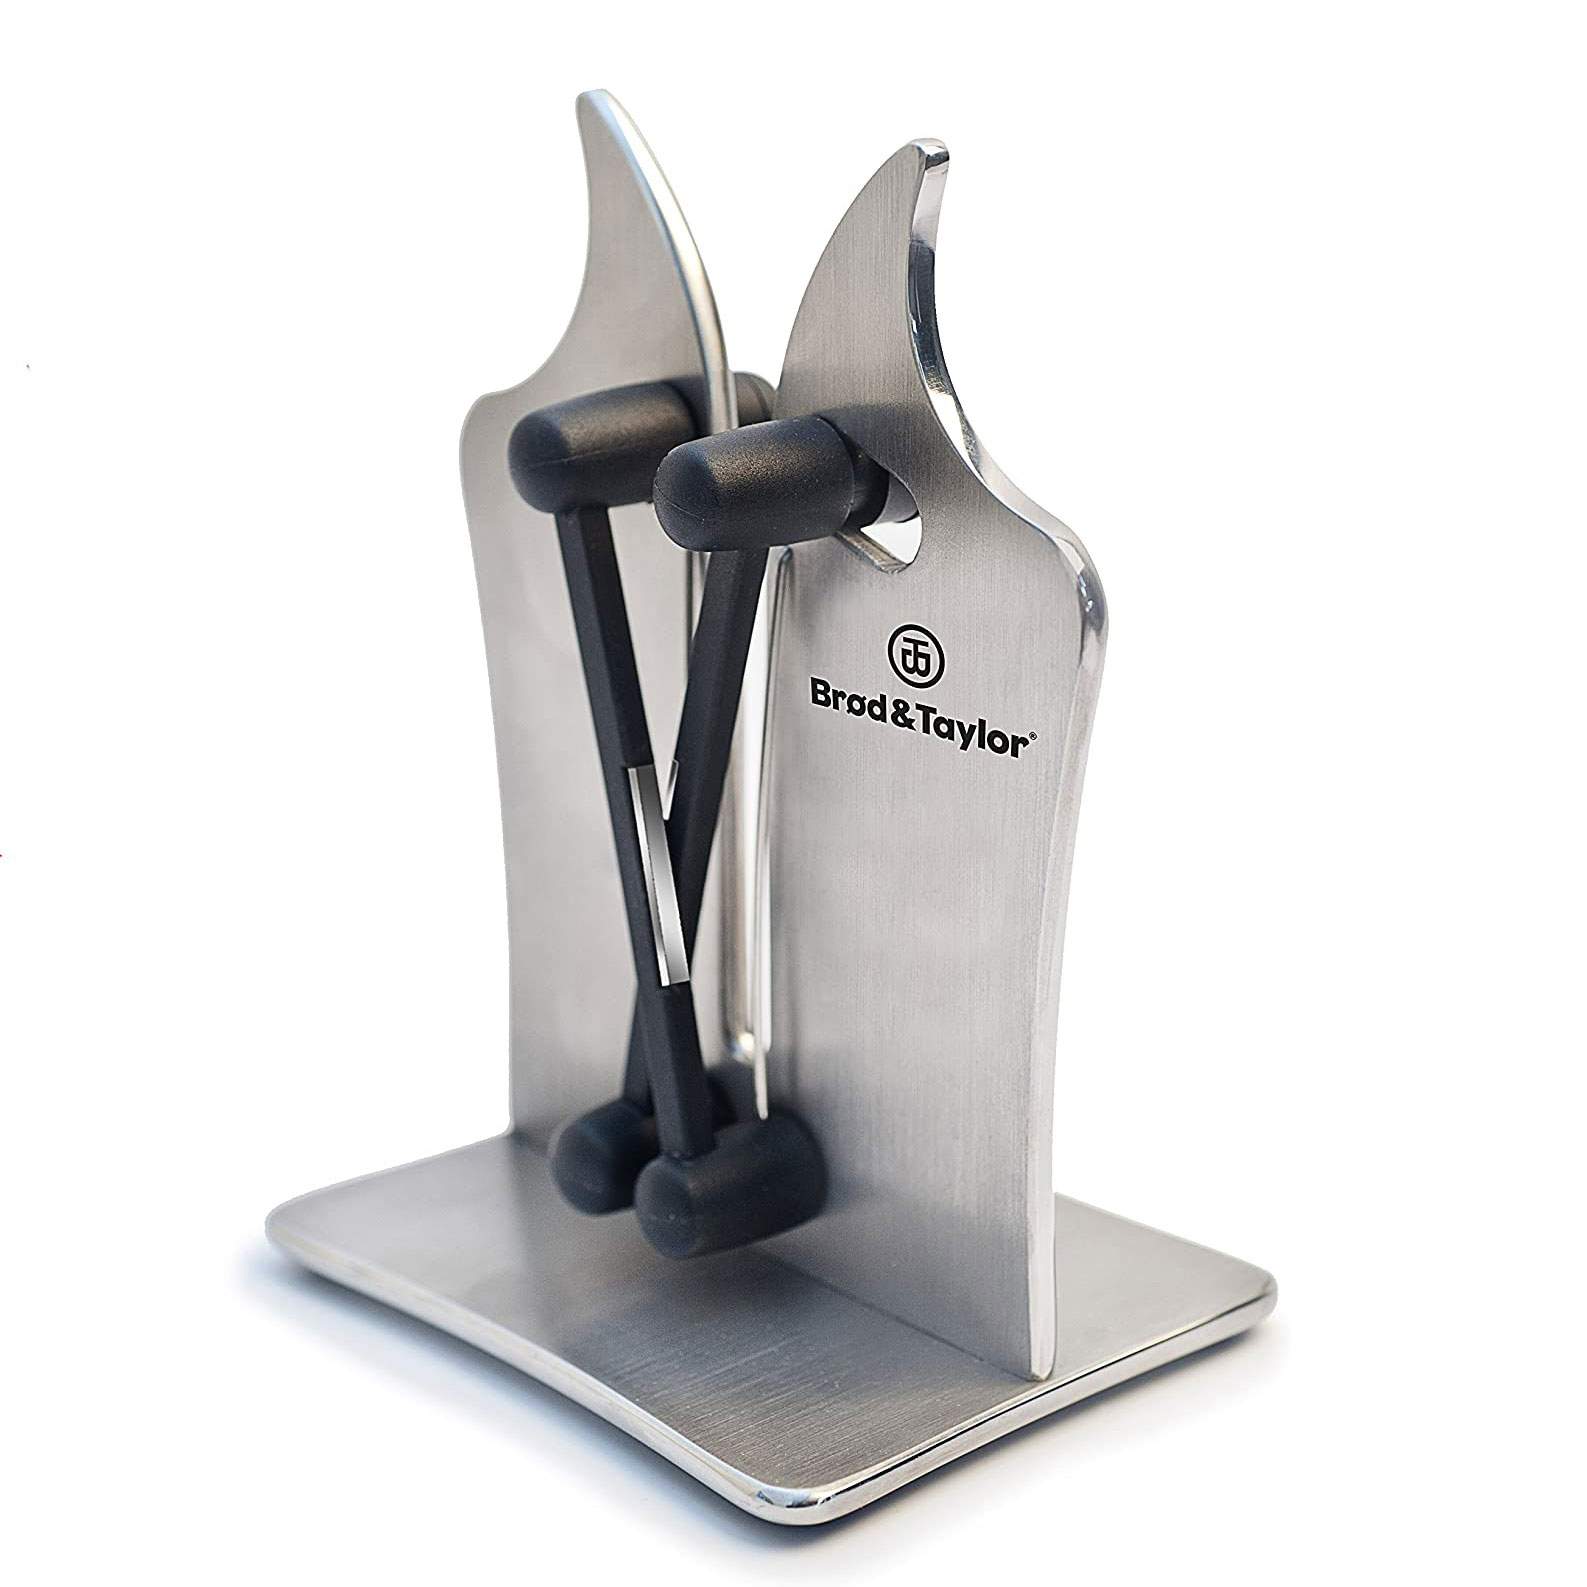 Brod and Taylor stainless steel knife sharpener